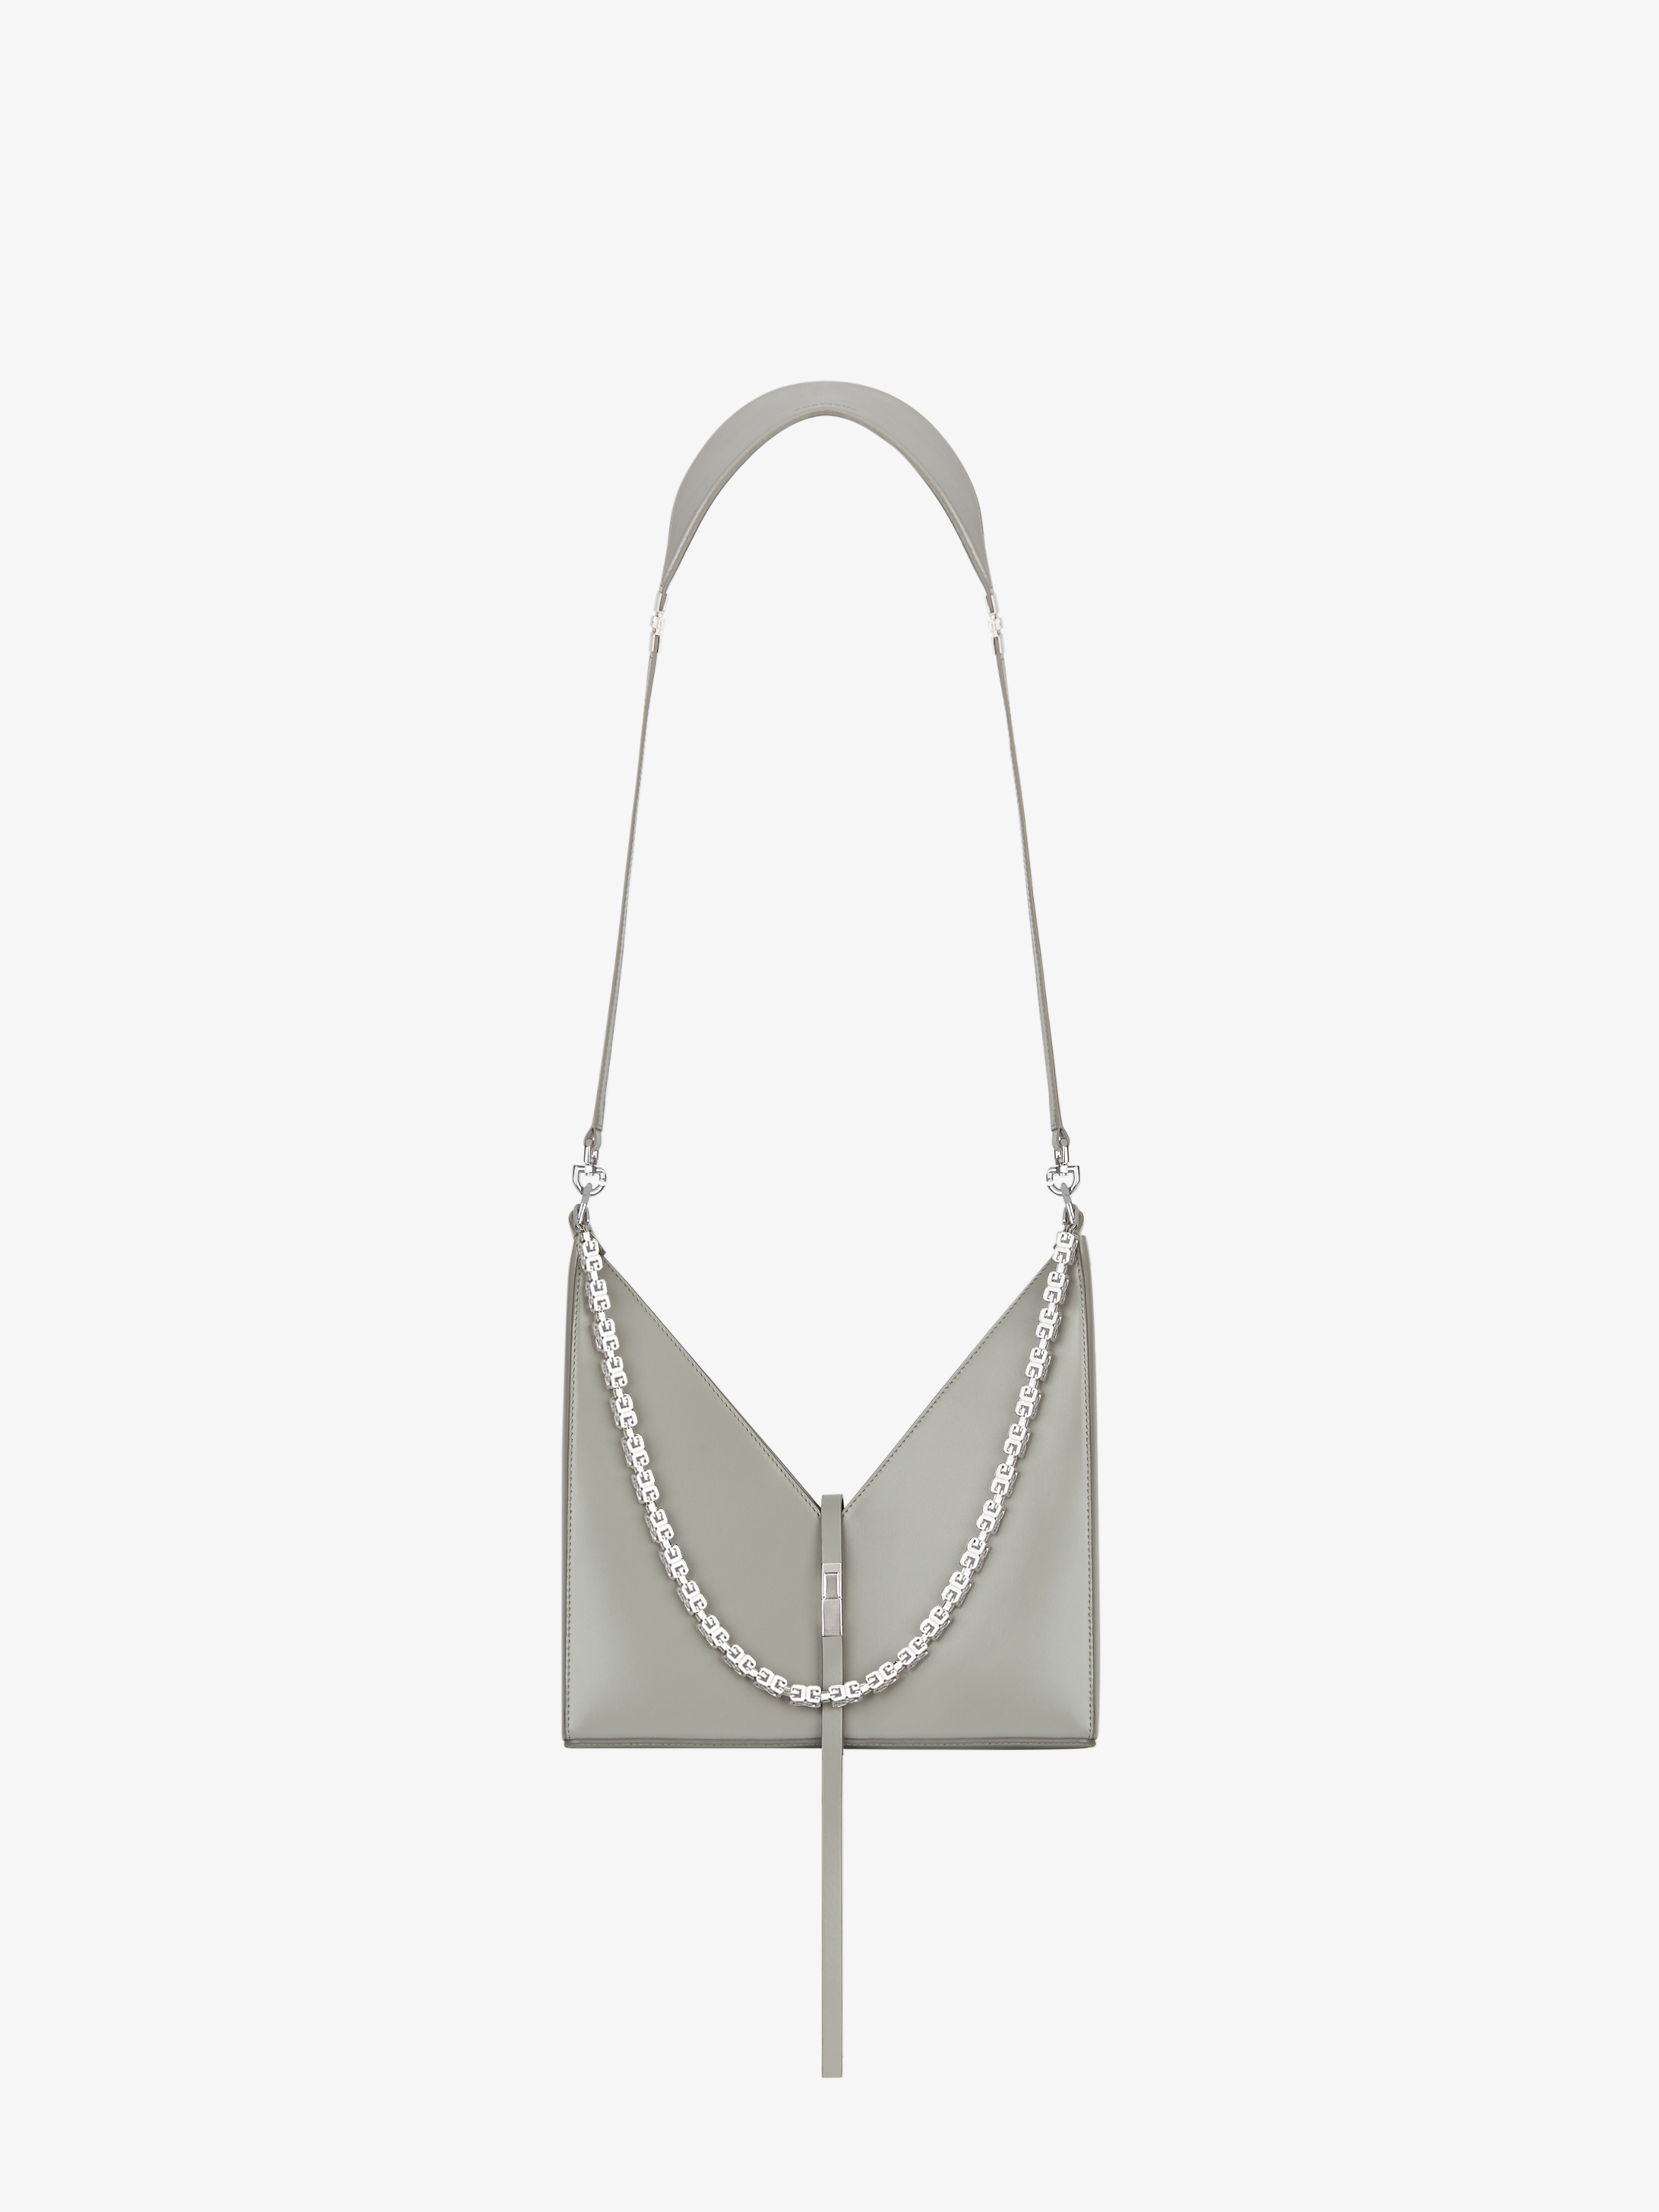 Small Cut Out bag in box leather with chain